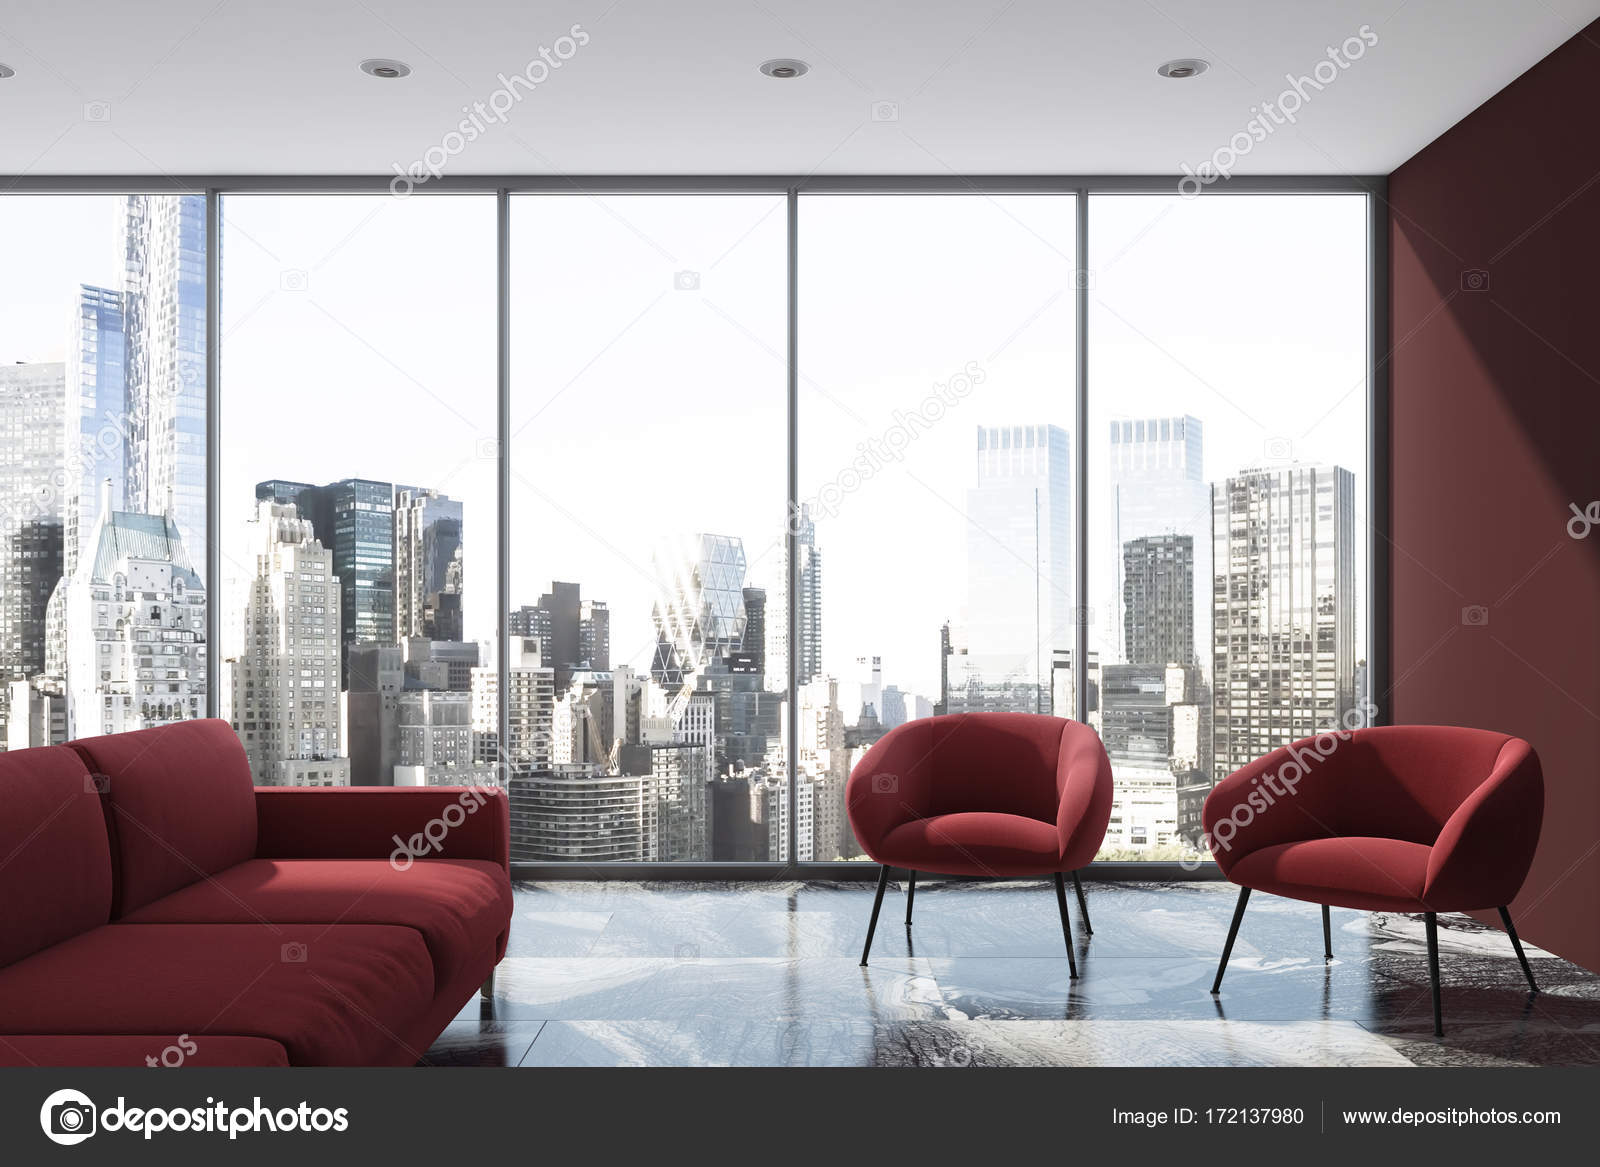 Wohnzimmer Rotes Sofa Lila Wohnzimmer Rotes Sofa Sessel Loft Stockfoto